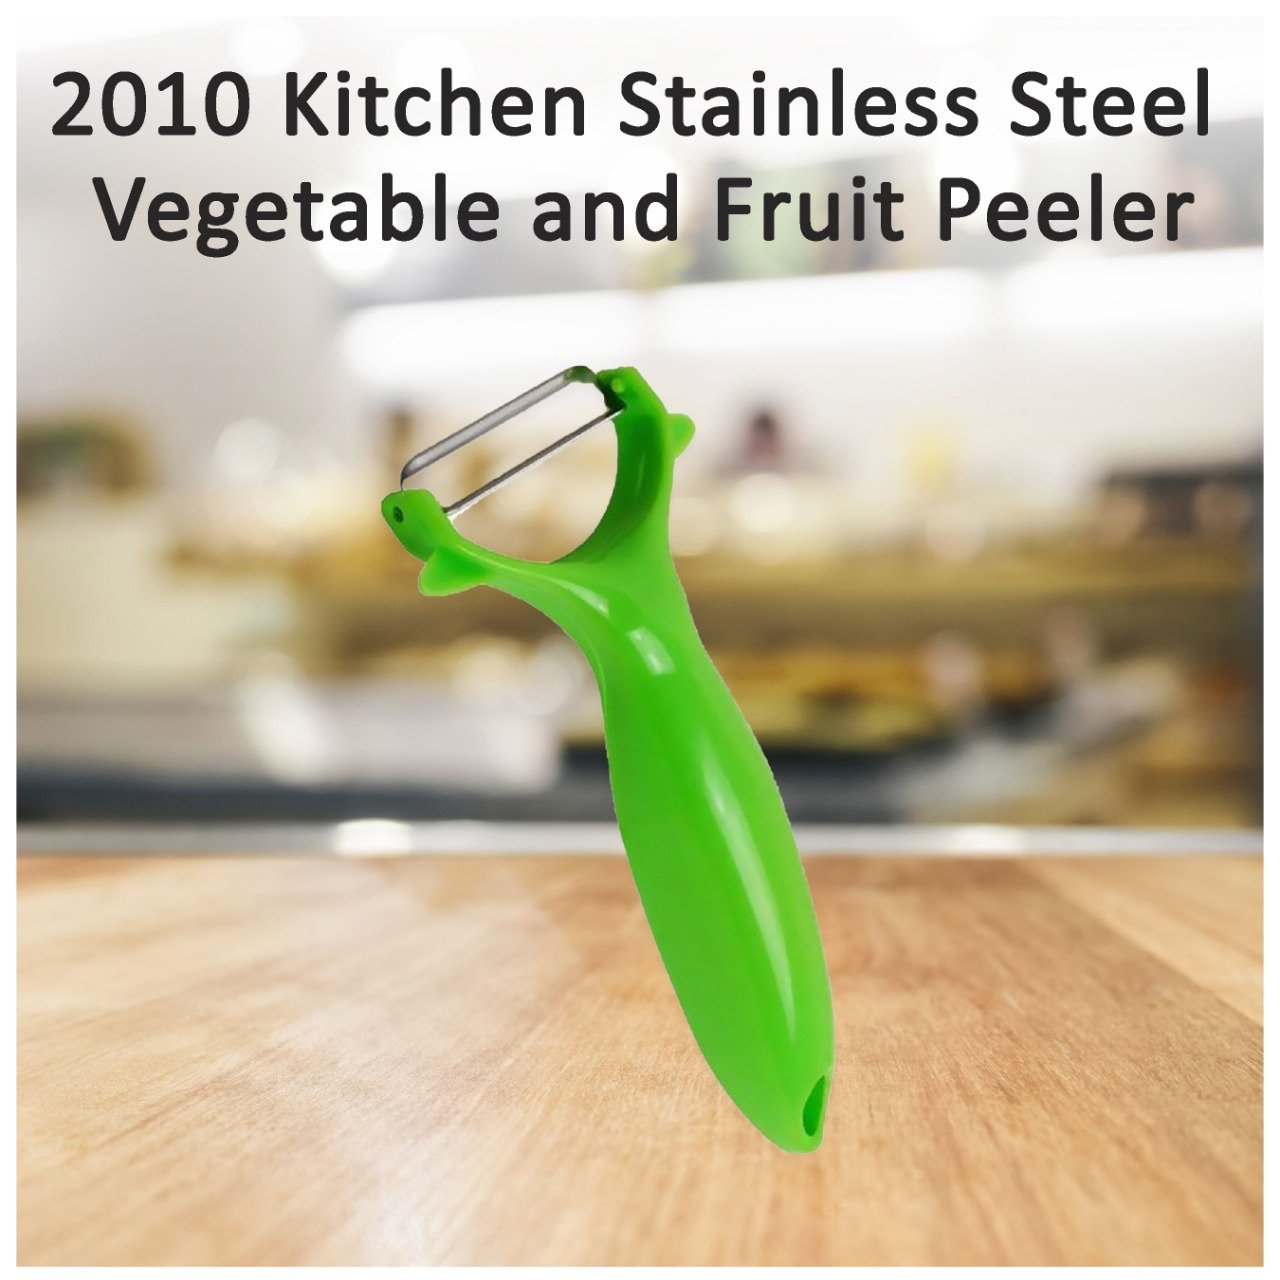 2010 Kitchen Stainless Steel Vegetable and Fruit Peeler -